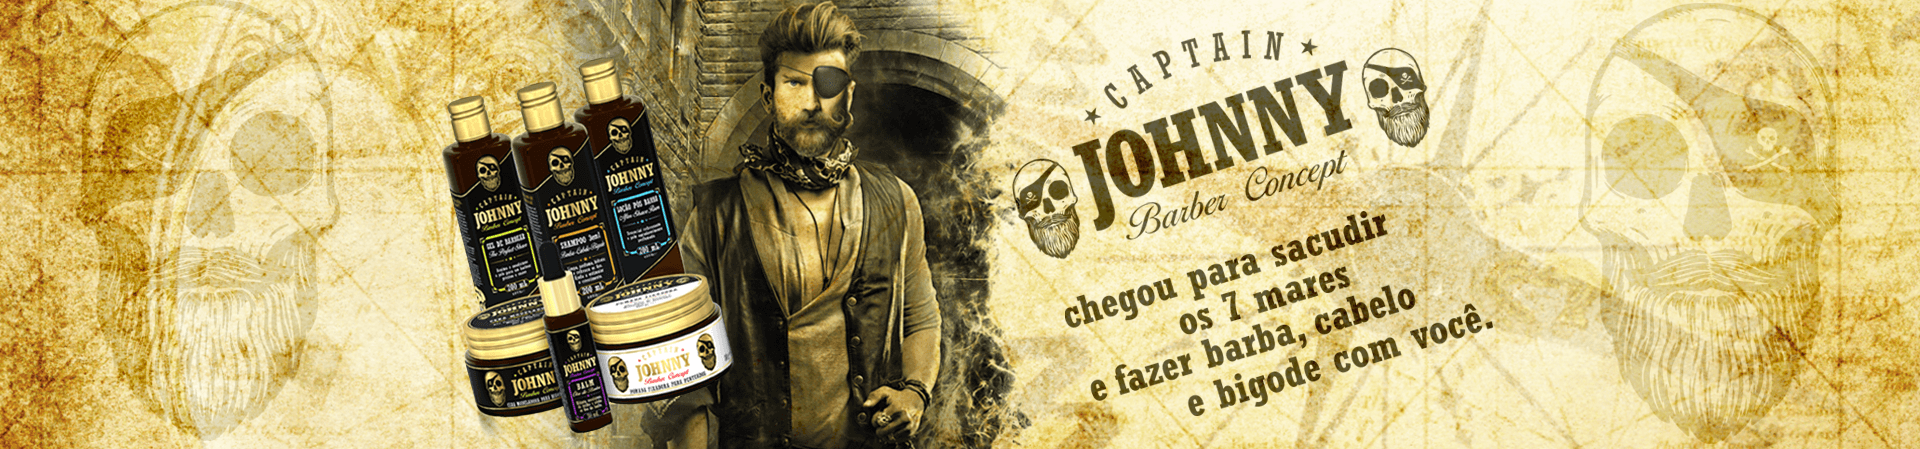 Fullbanner Captain Johnny